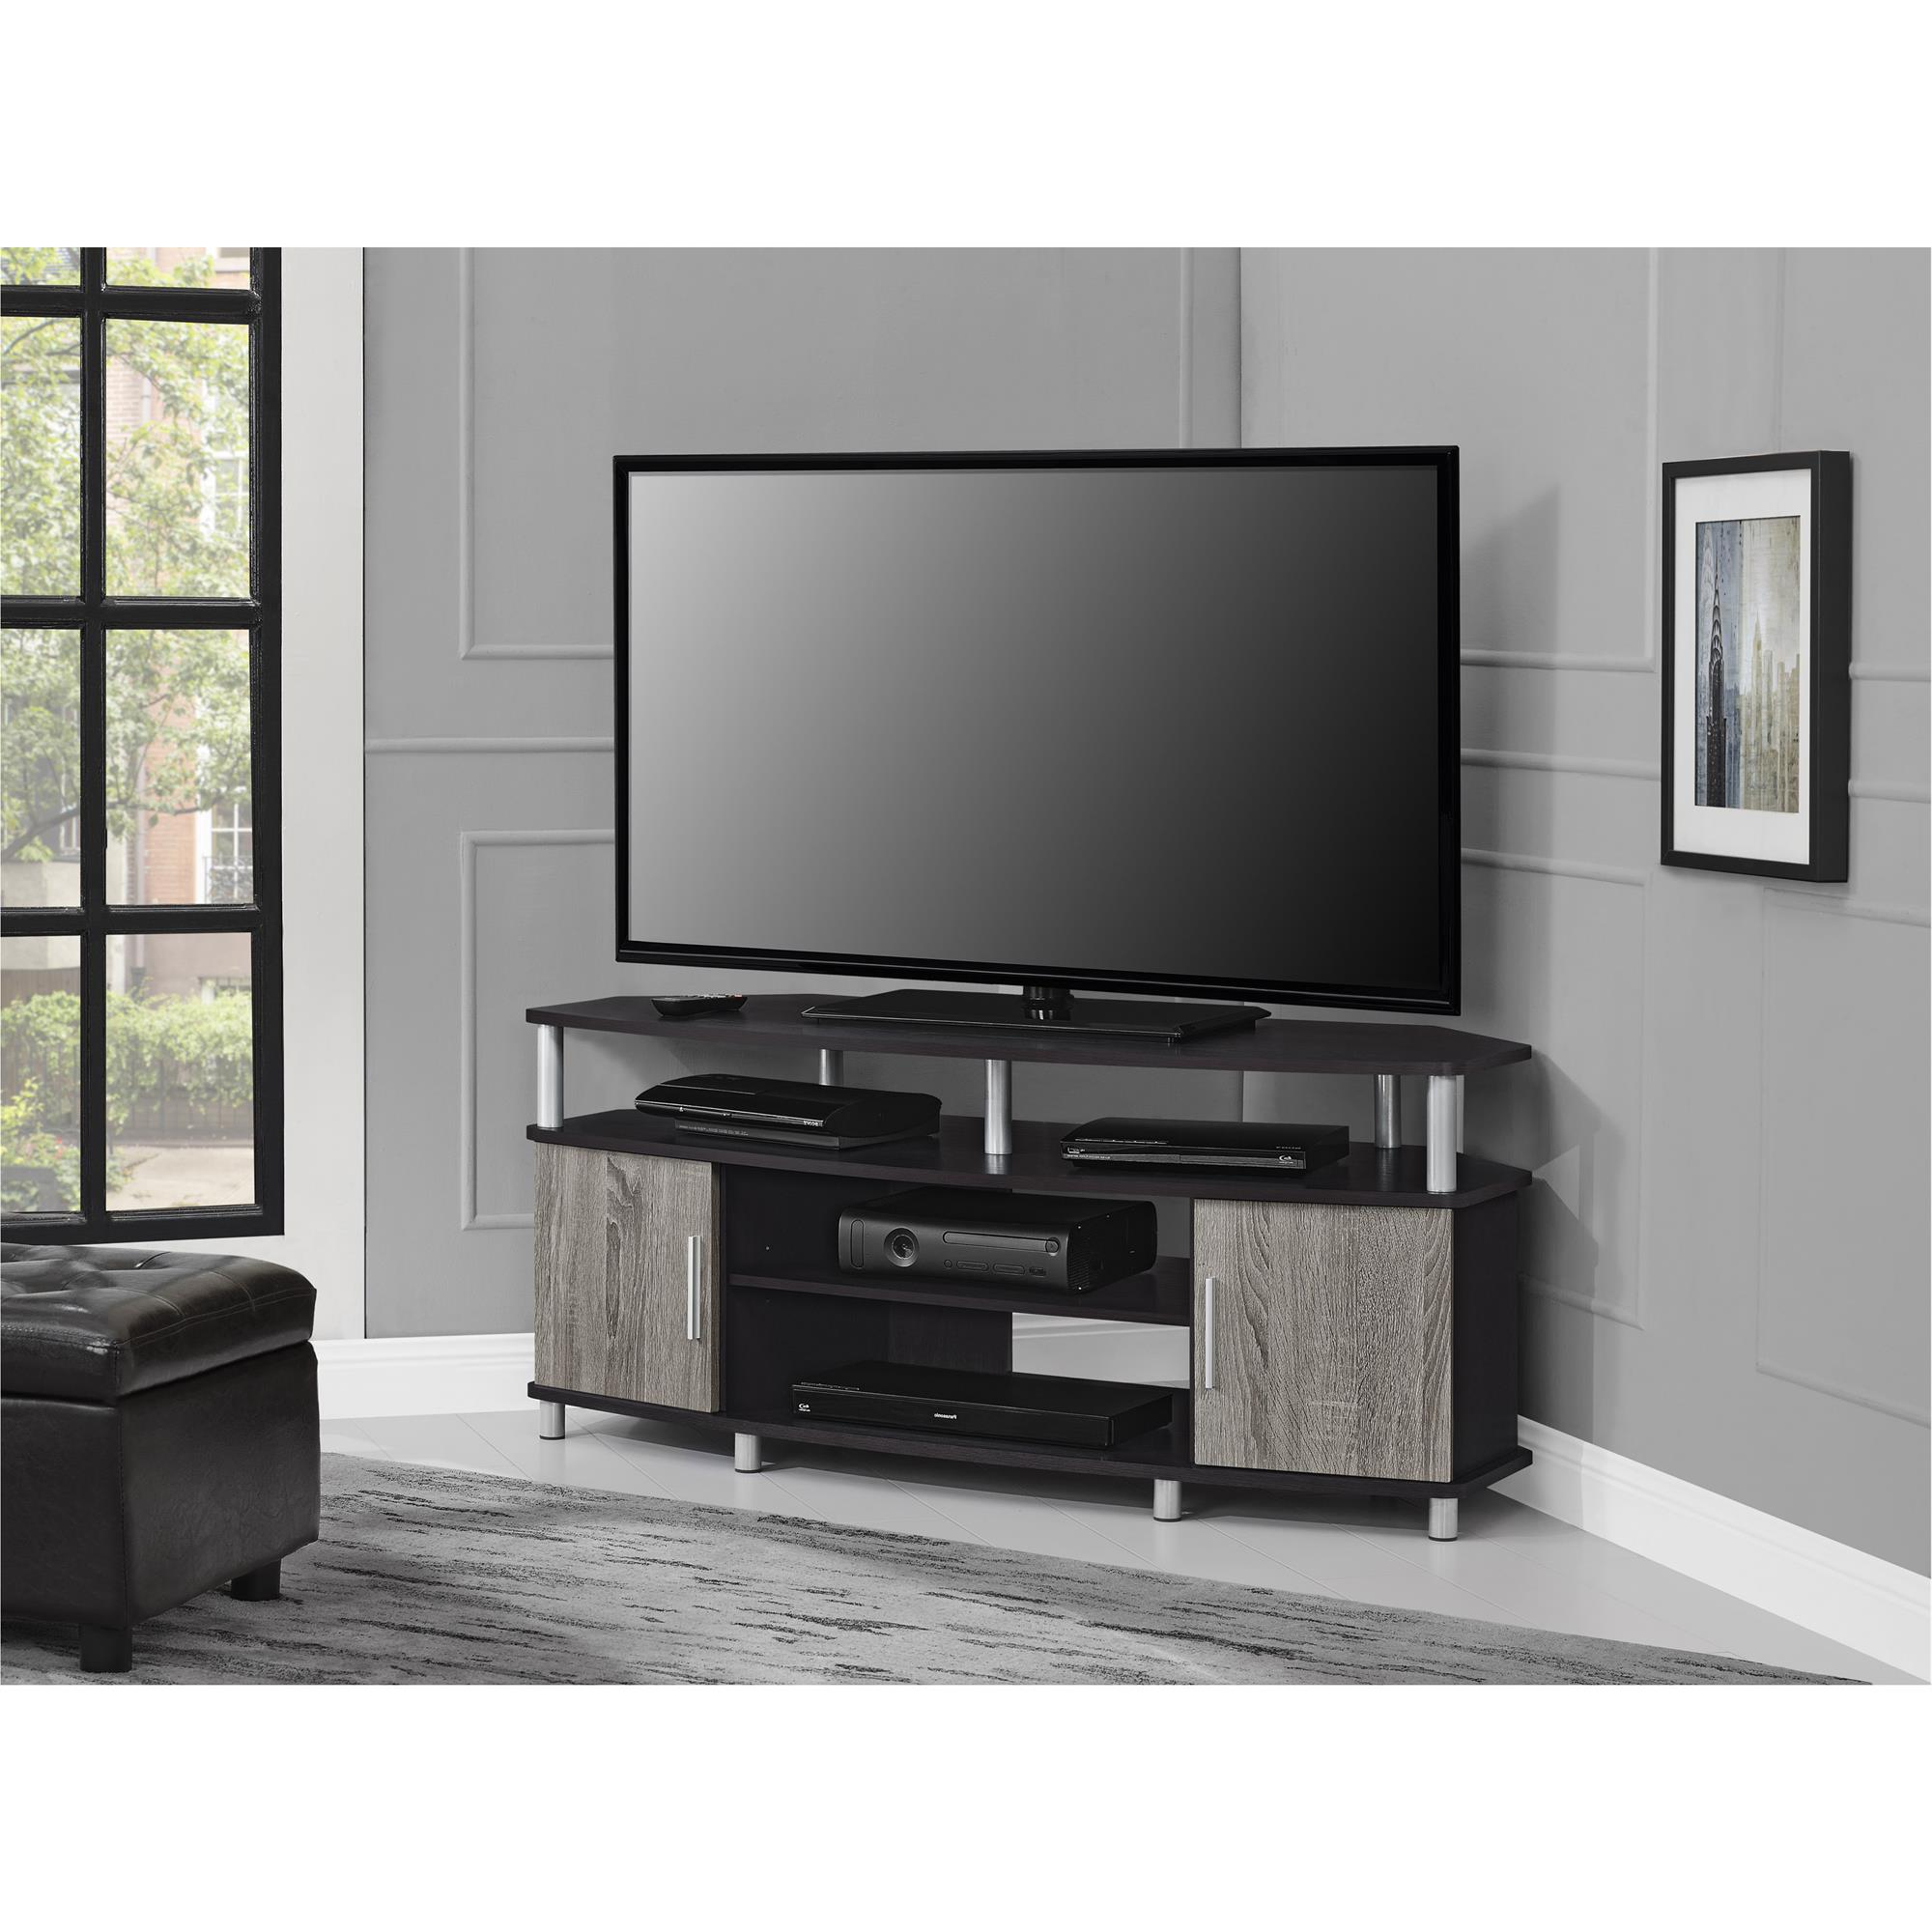 "Favorite Tv Stands For Corner Throughout Ameriwood Home Carson Corner Tv Stand For Tvs Up To 50"" Wide, Black (Gallery 1 of 20)"